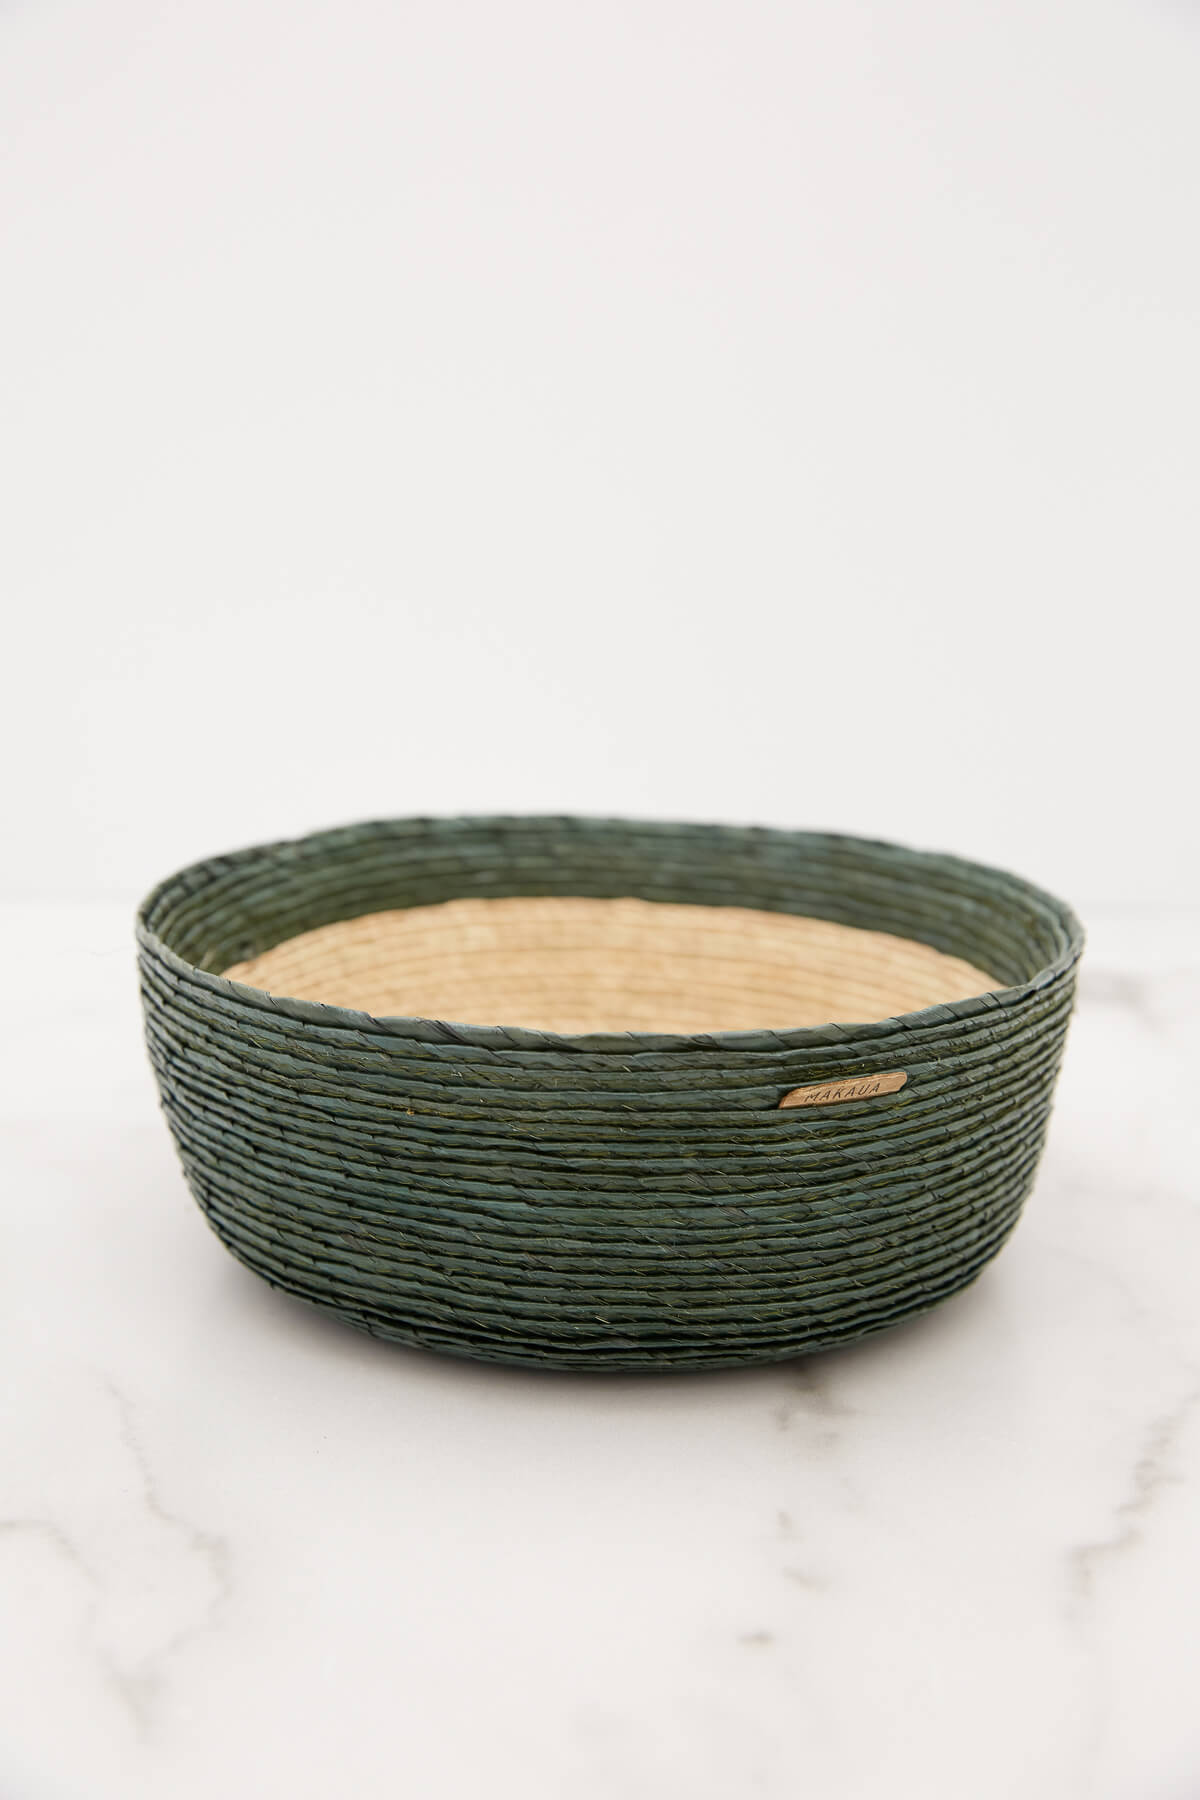 Makaua Medium Round Basket